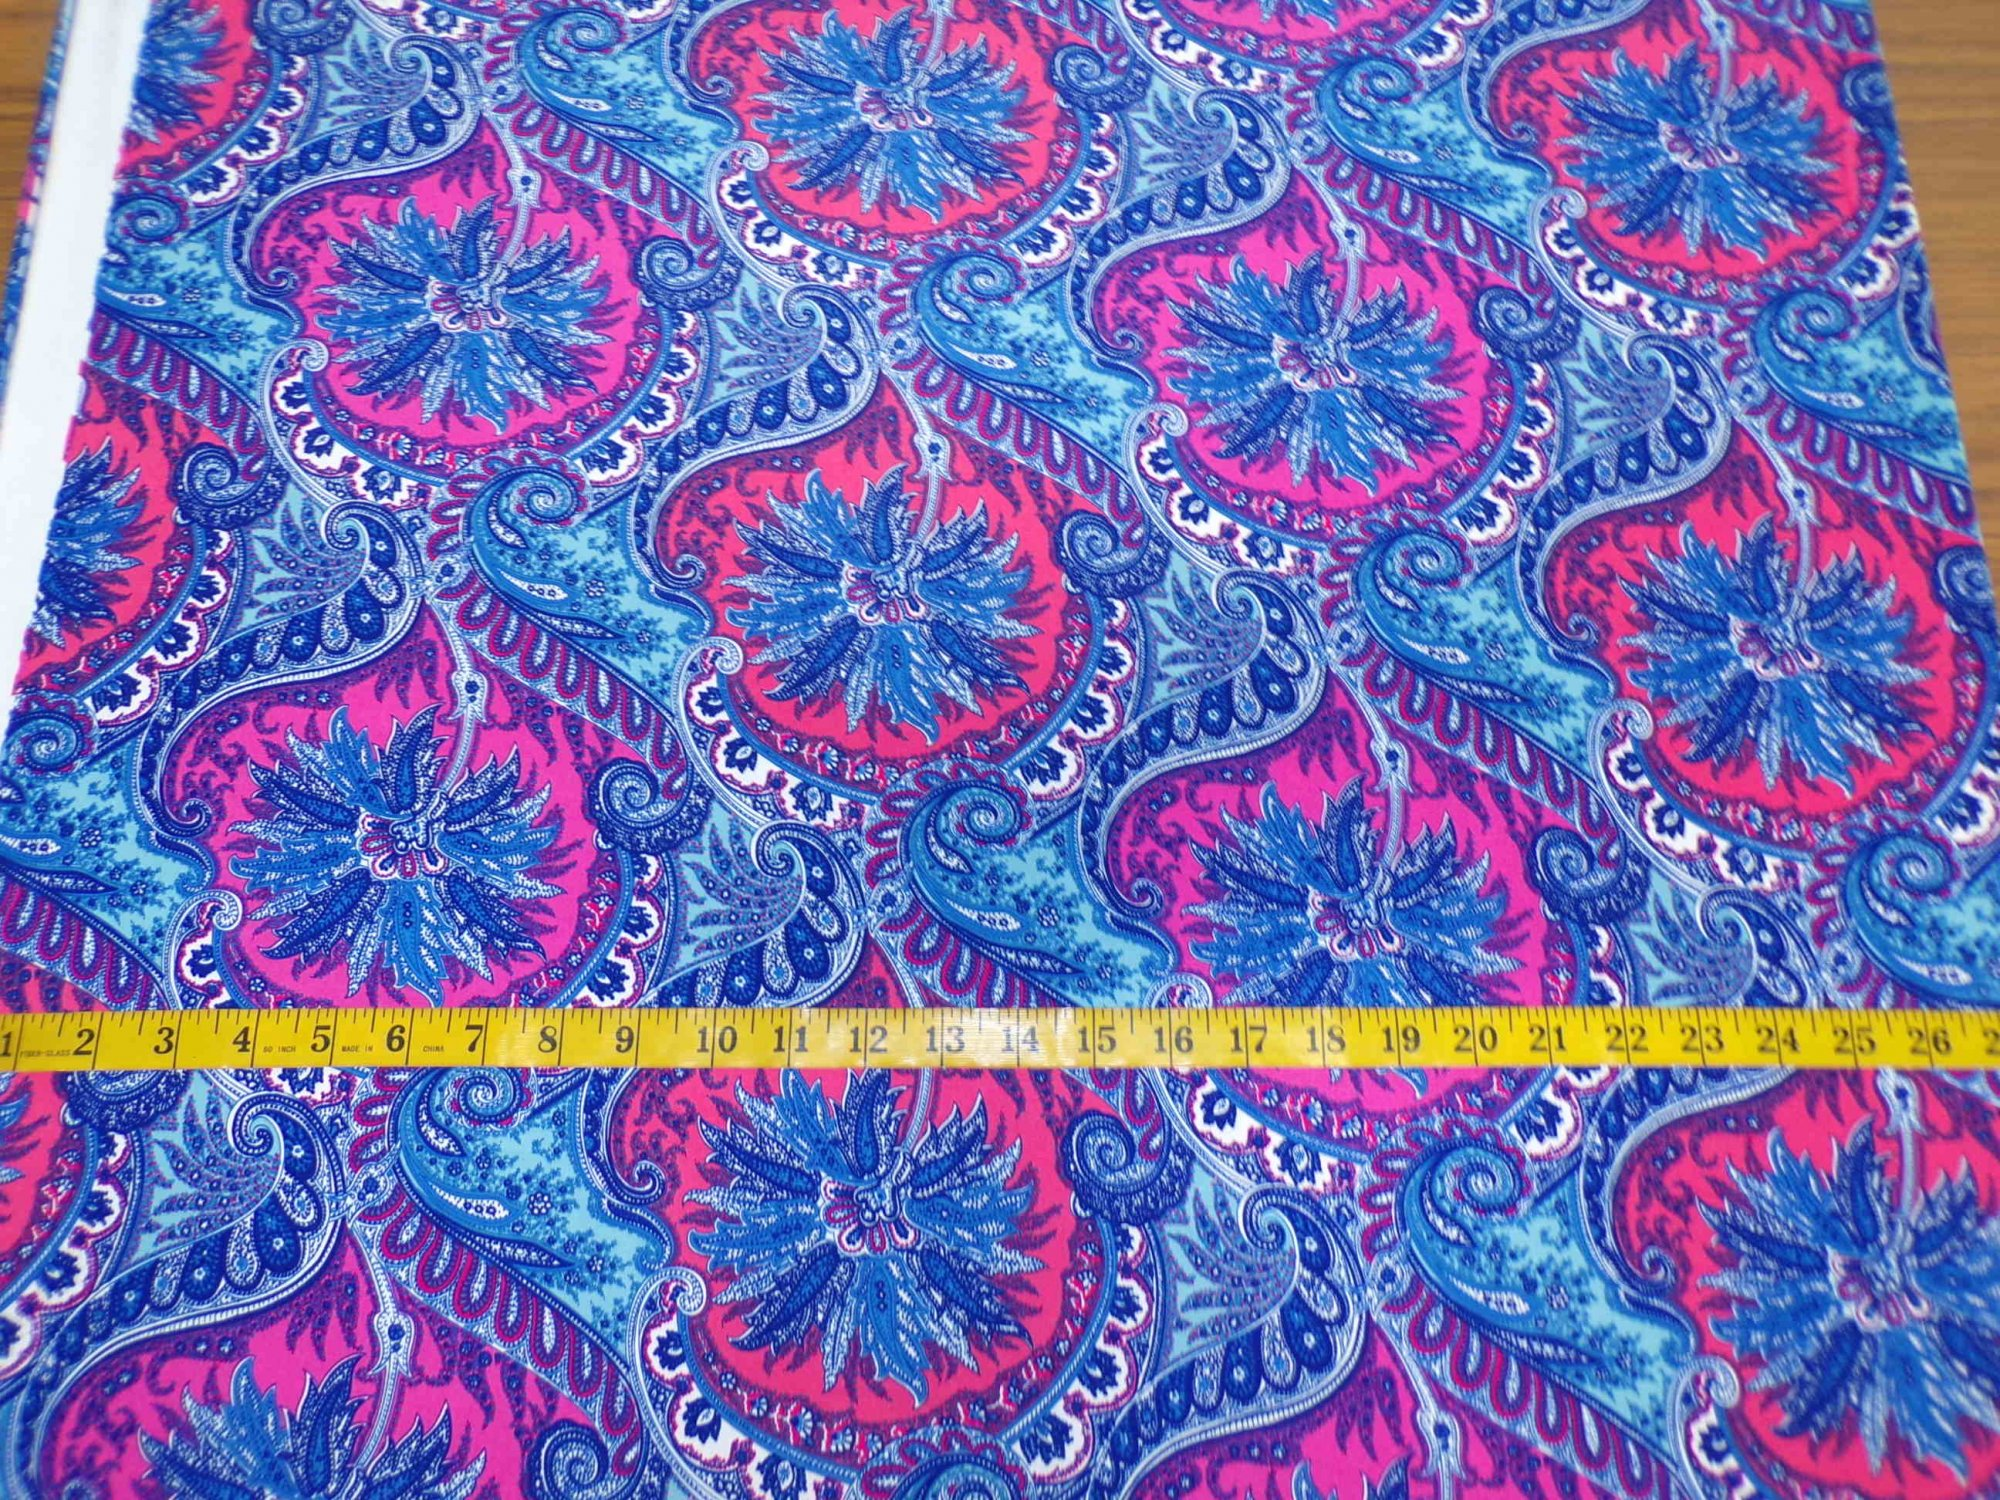 ITY Jersey – Blue and Pink Paisley